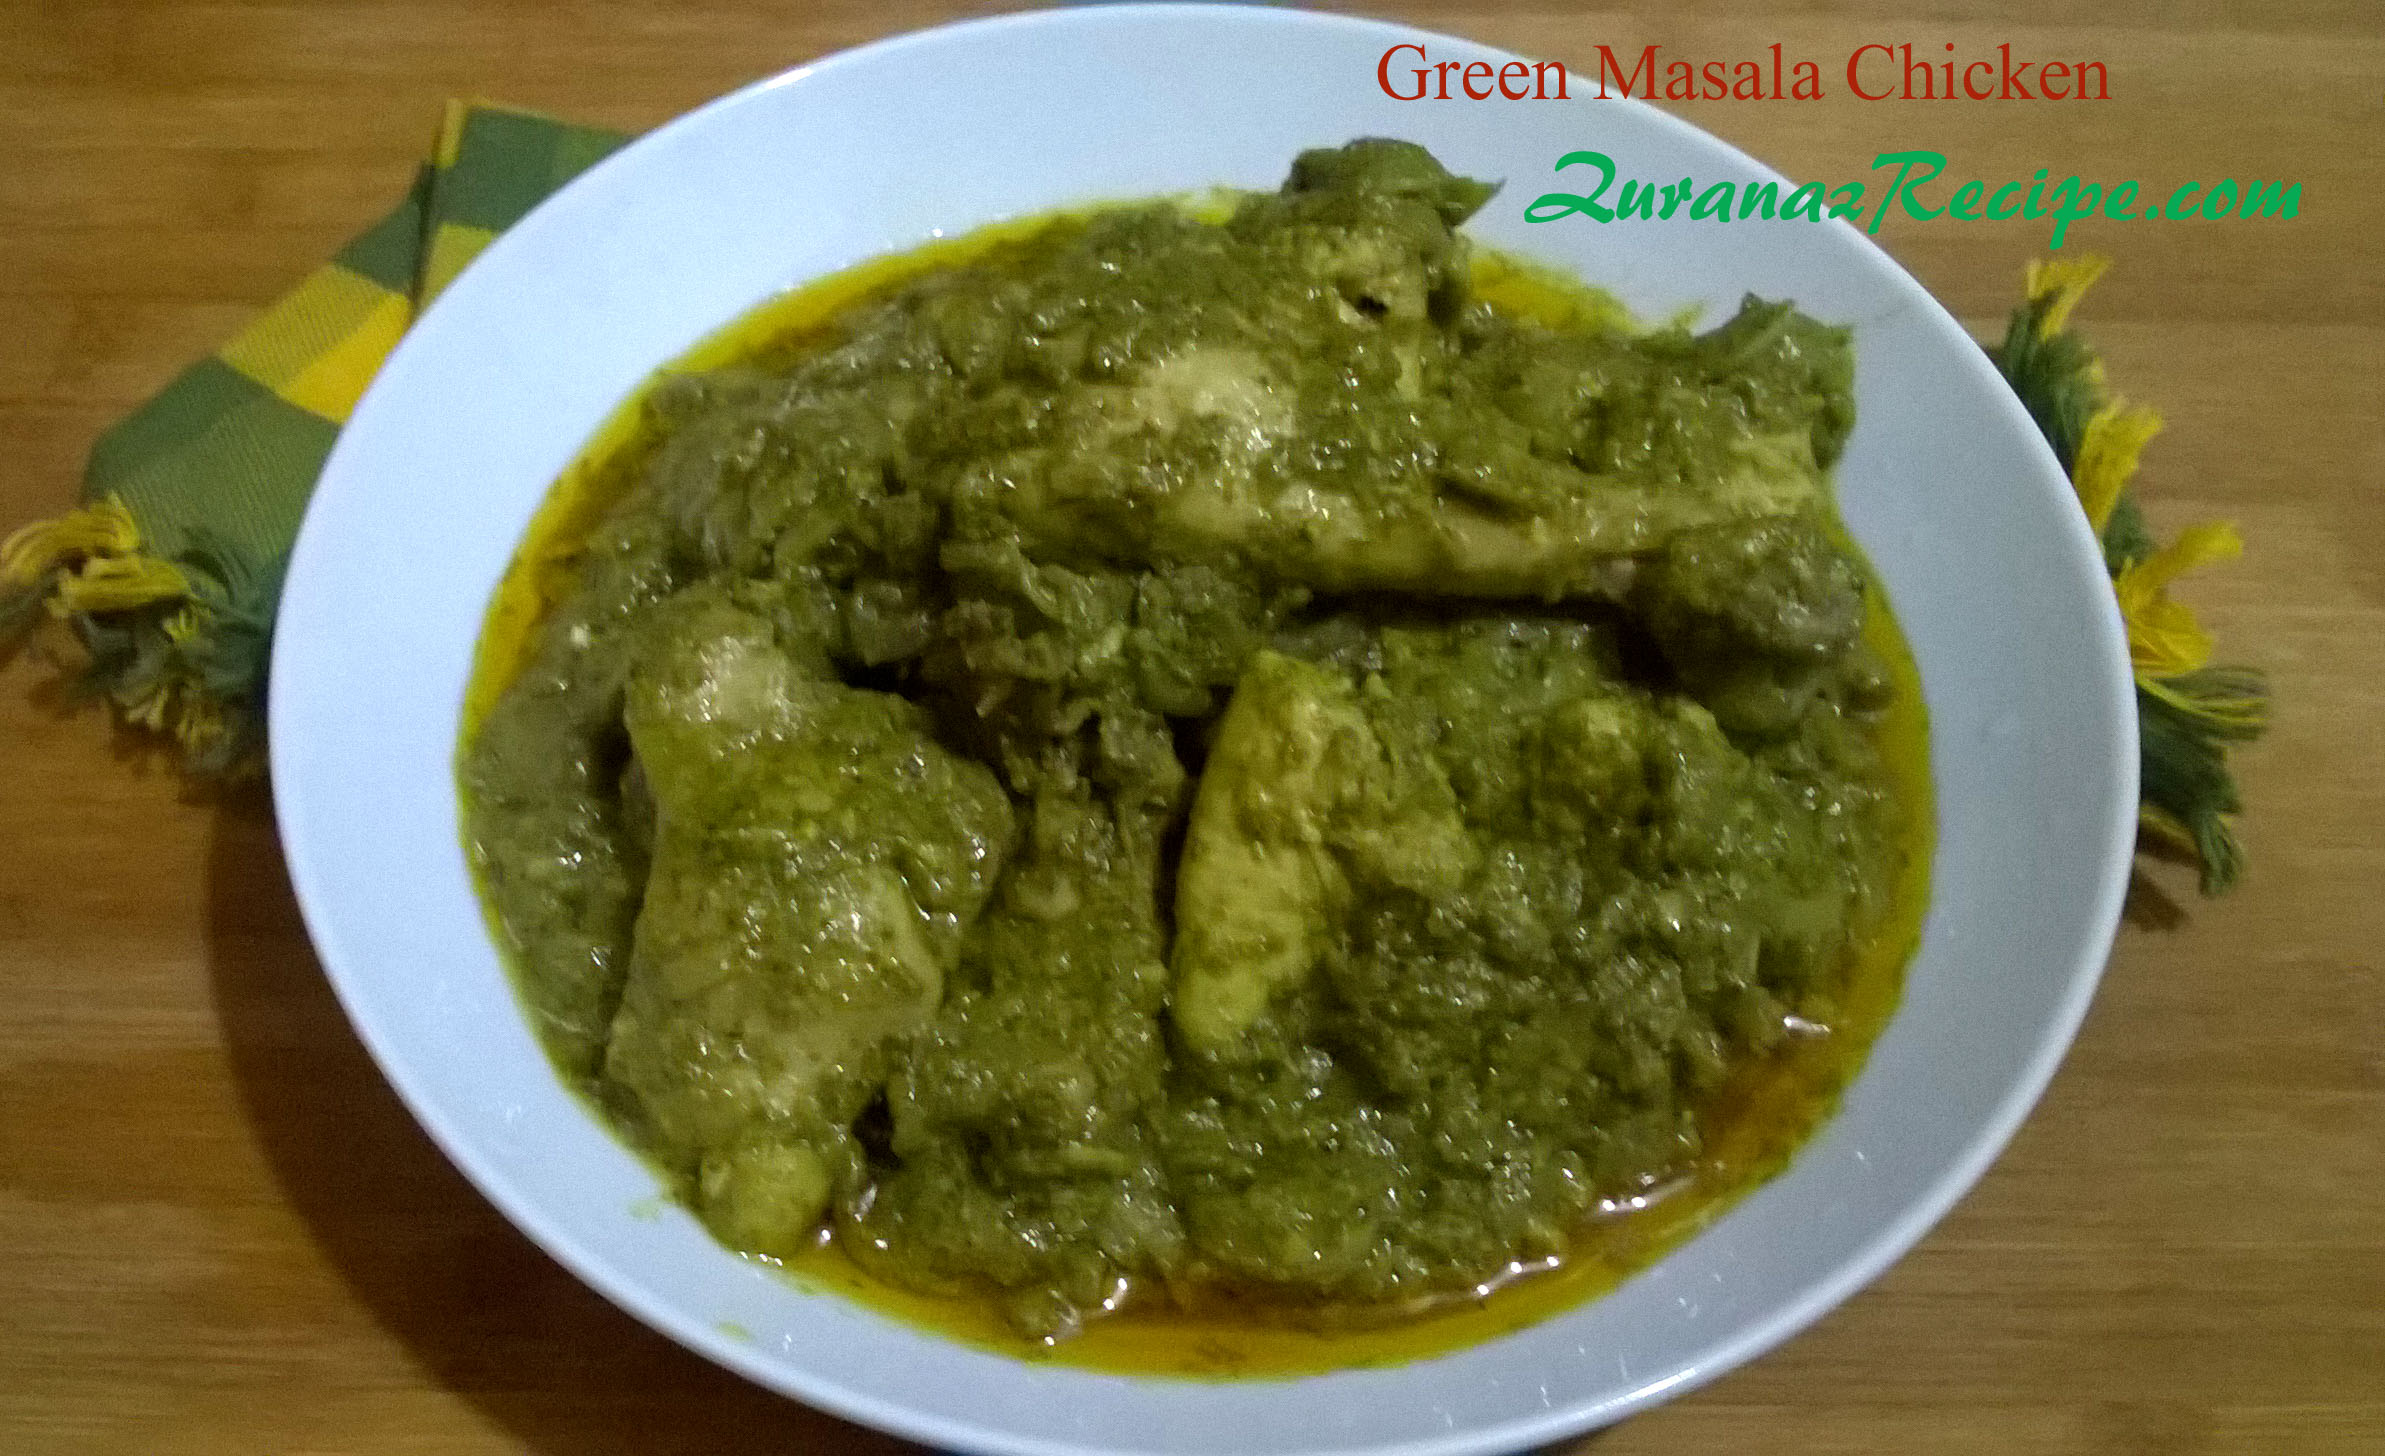 Green Masala Chicken